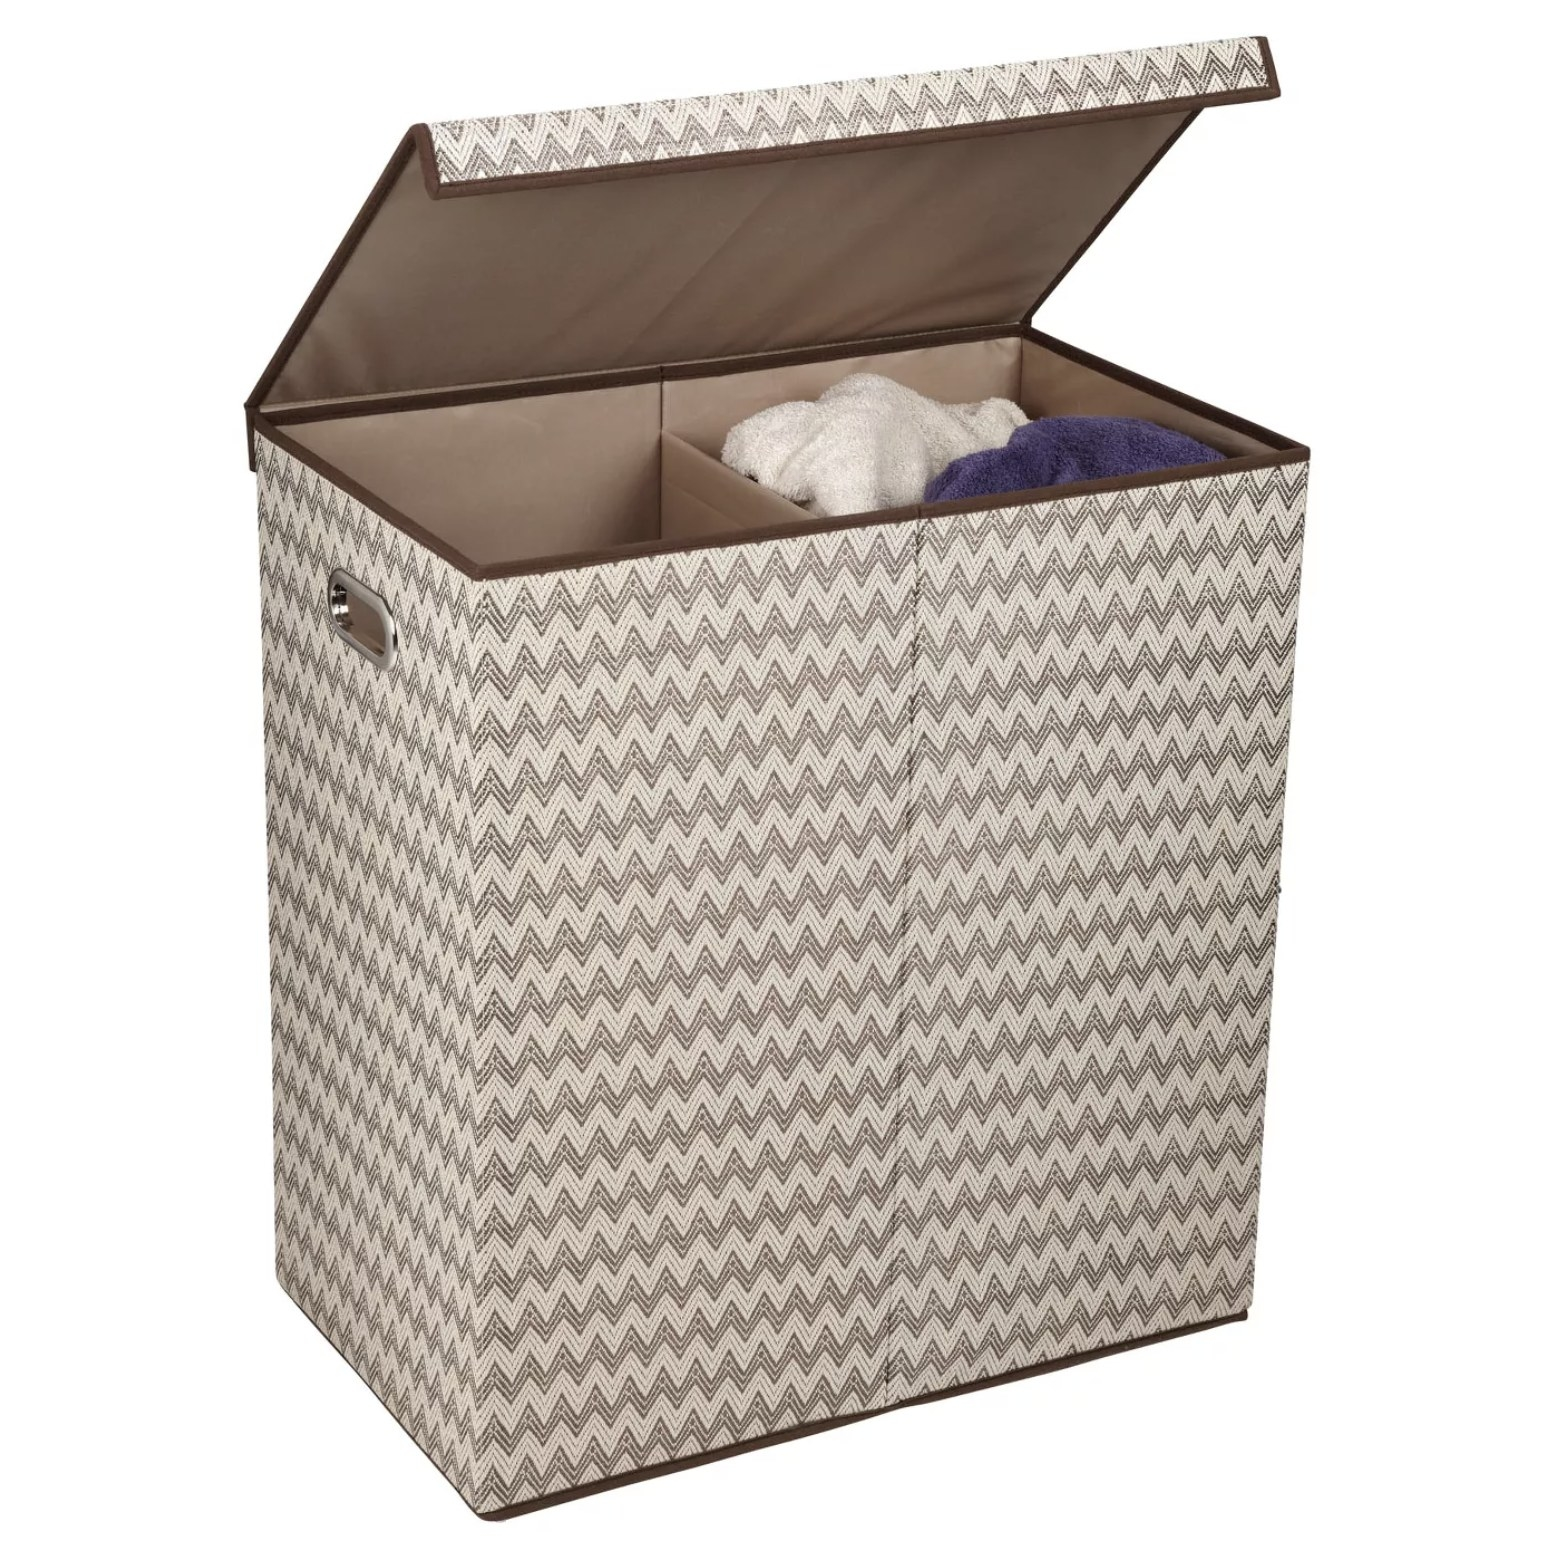 The split laundry basket